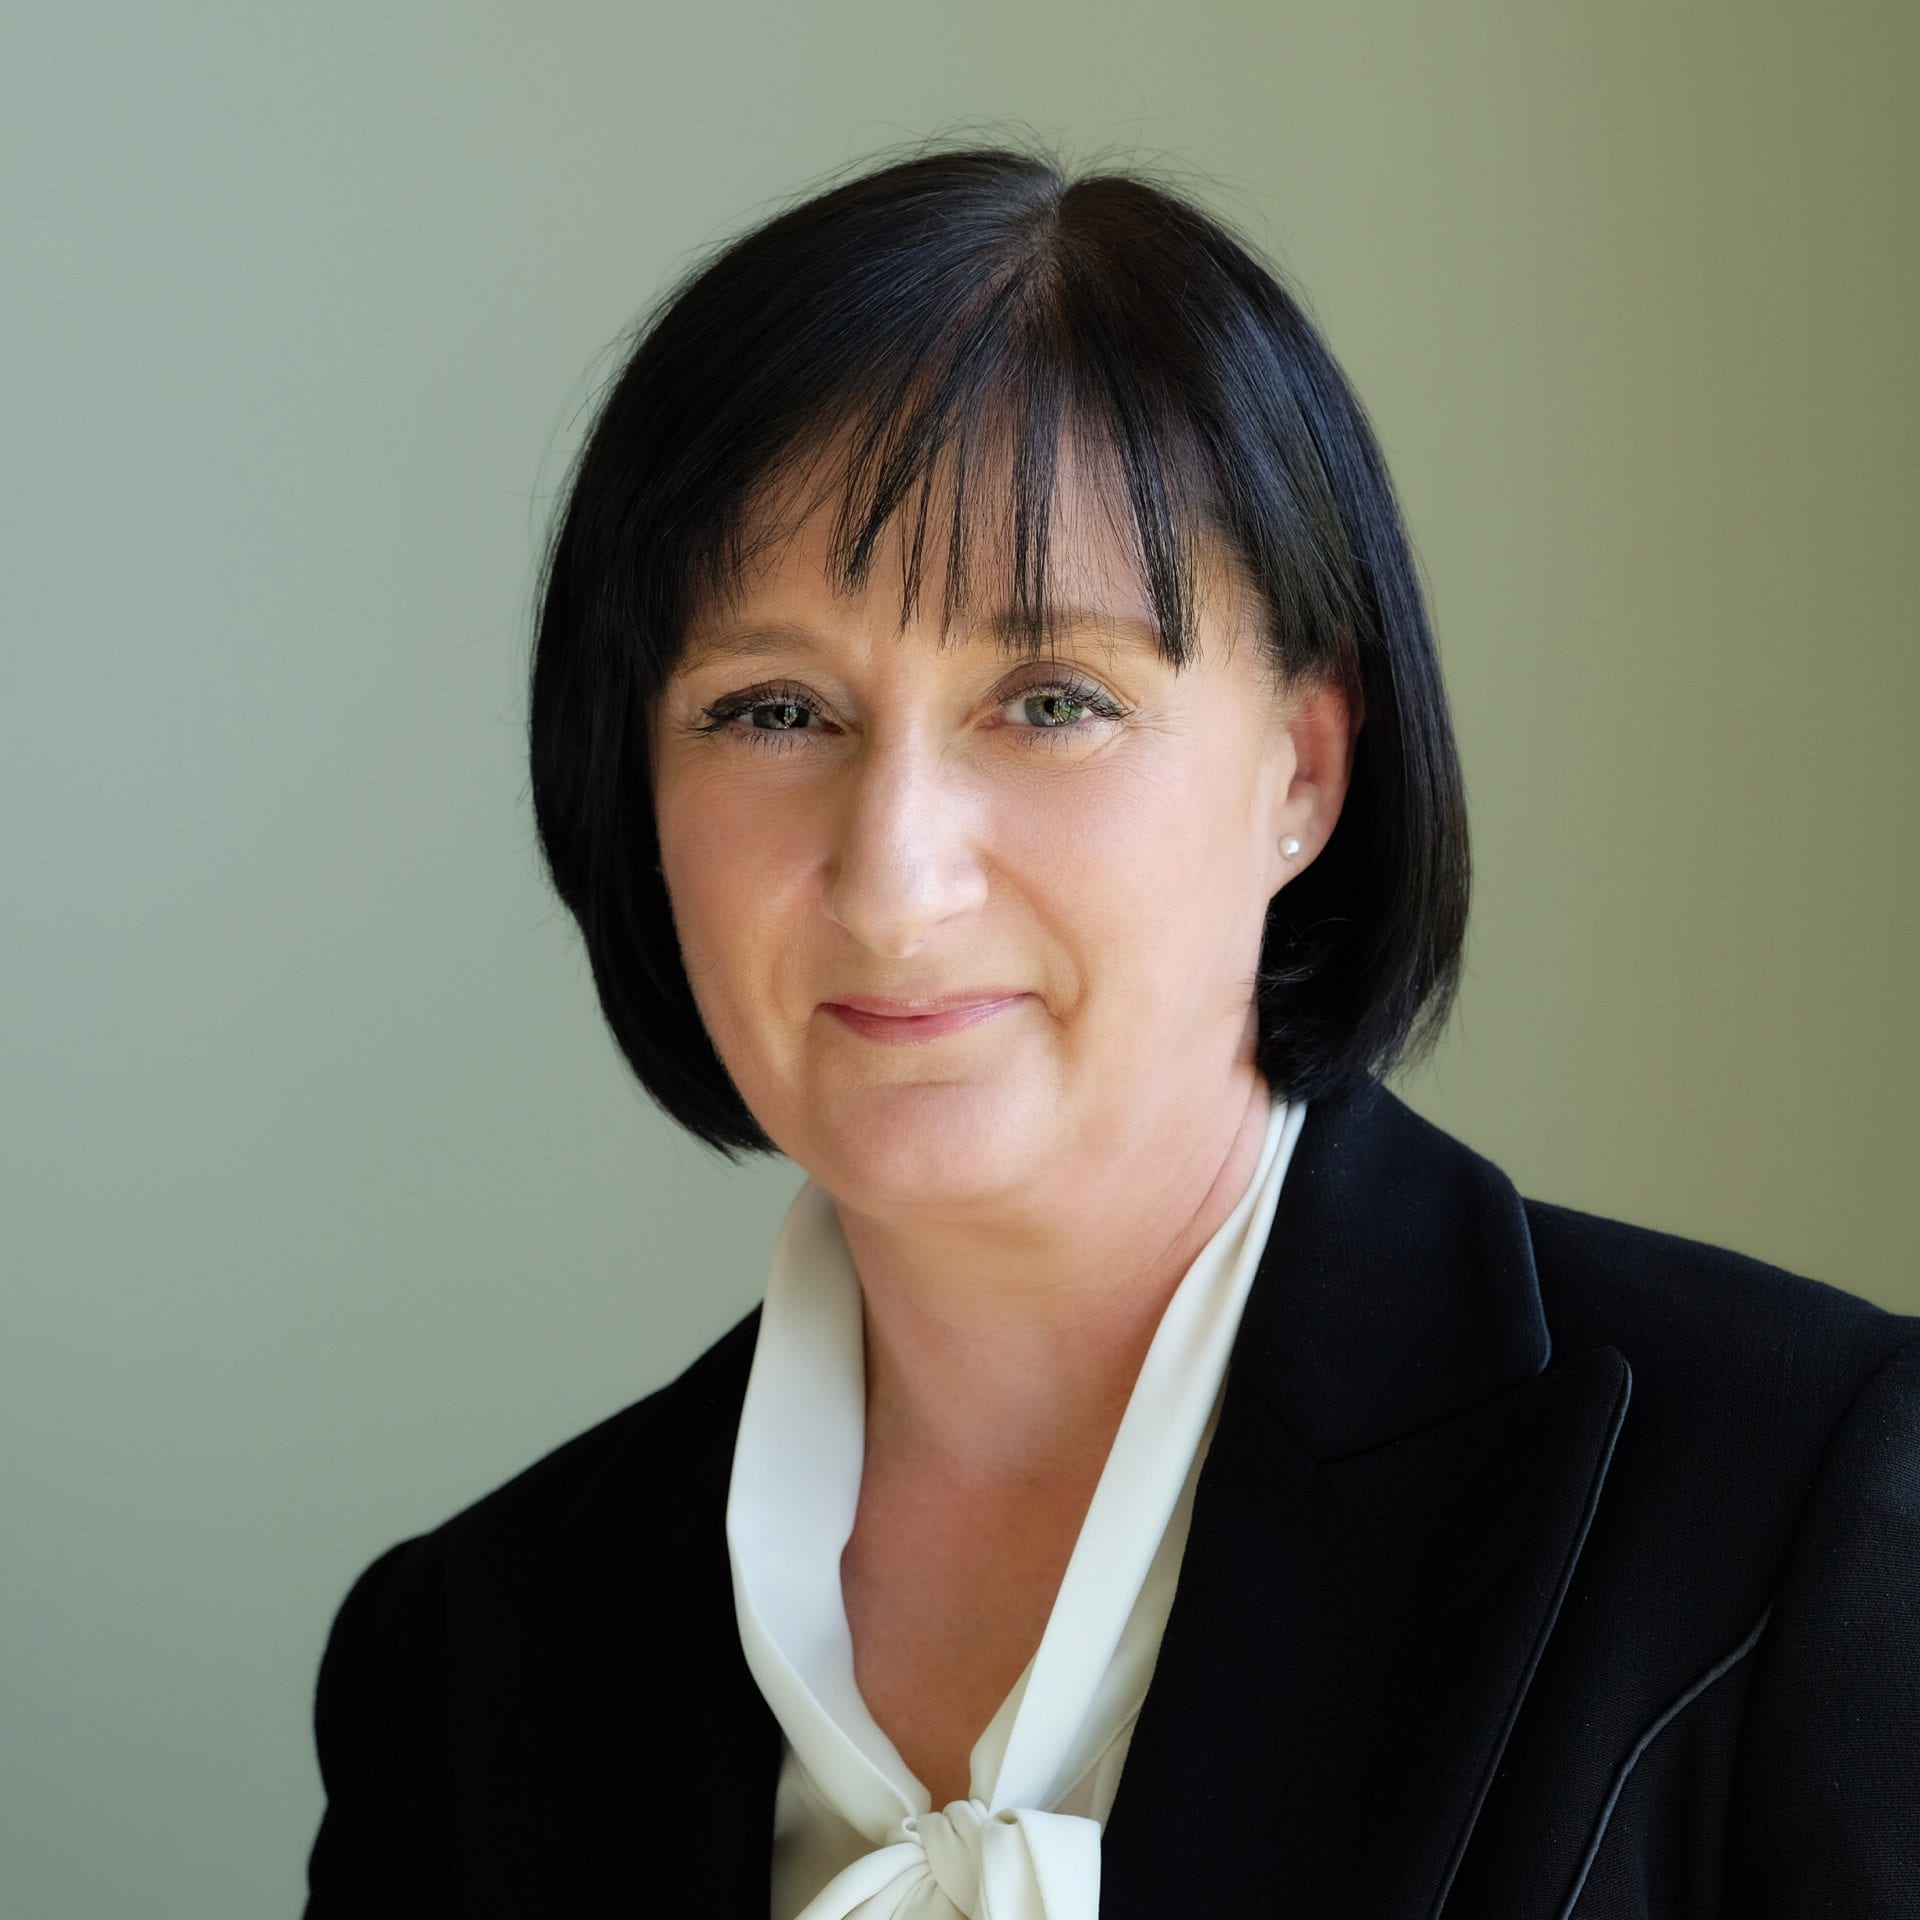 Audrey McStraw appointed Associate Director & RICS Registered Valuer with CBRE